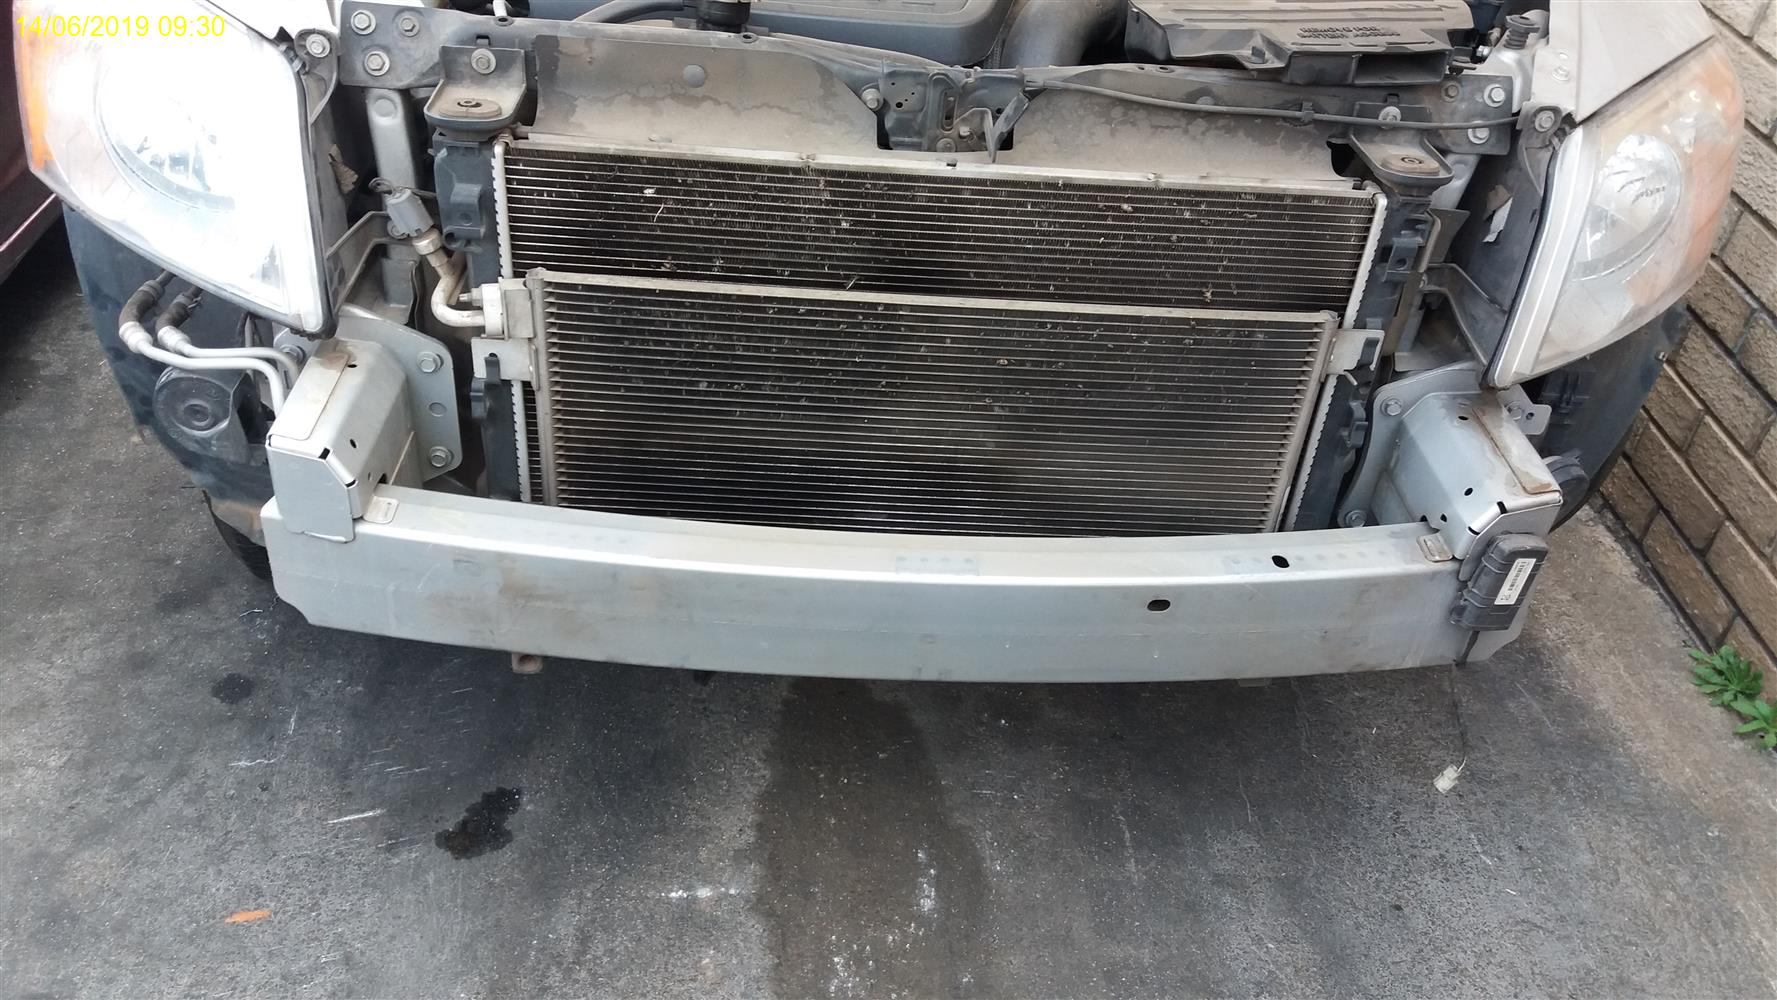 DODGE Caliber/SXT - CODE 2 For Rebuild